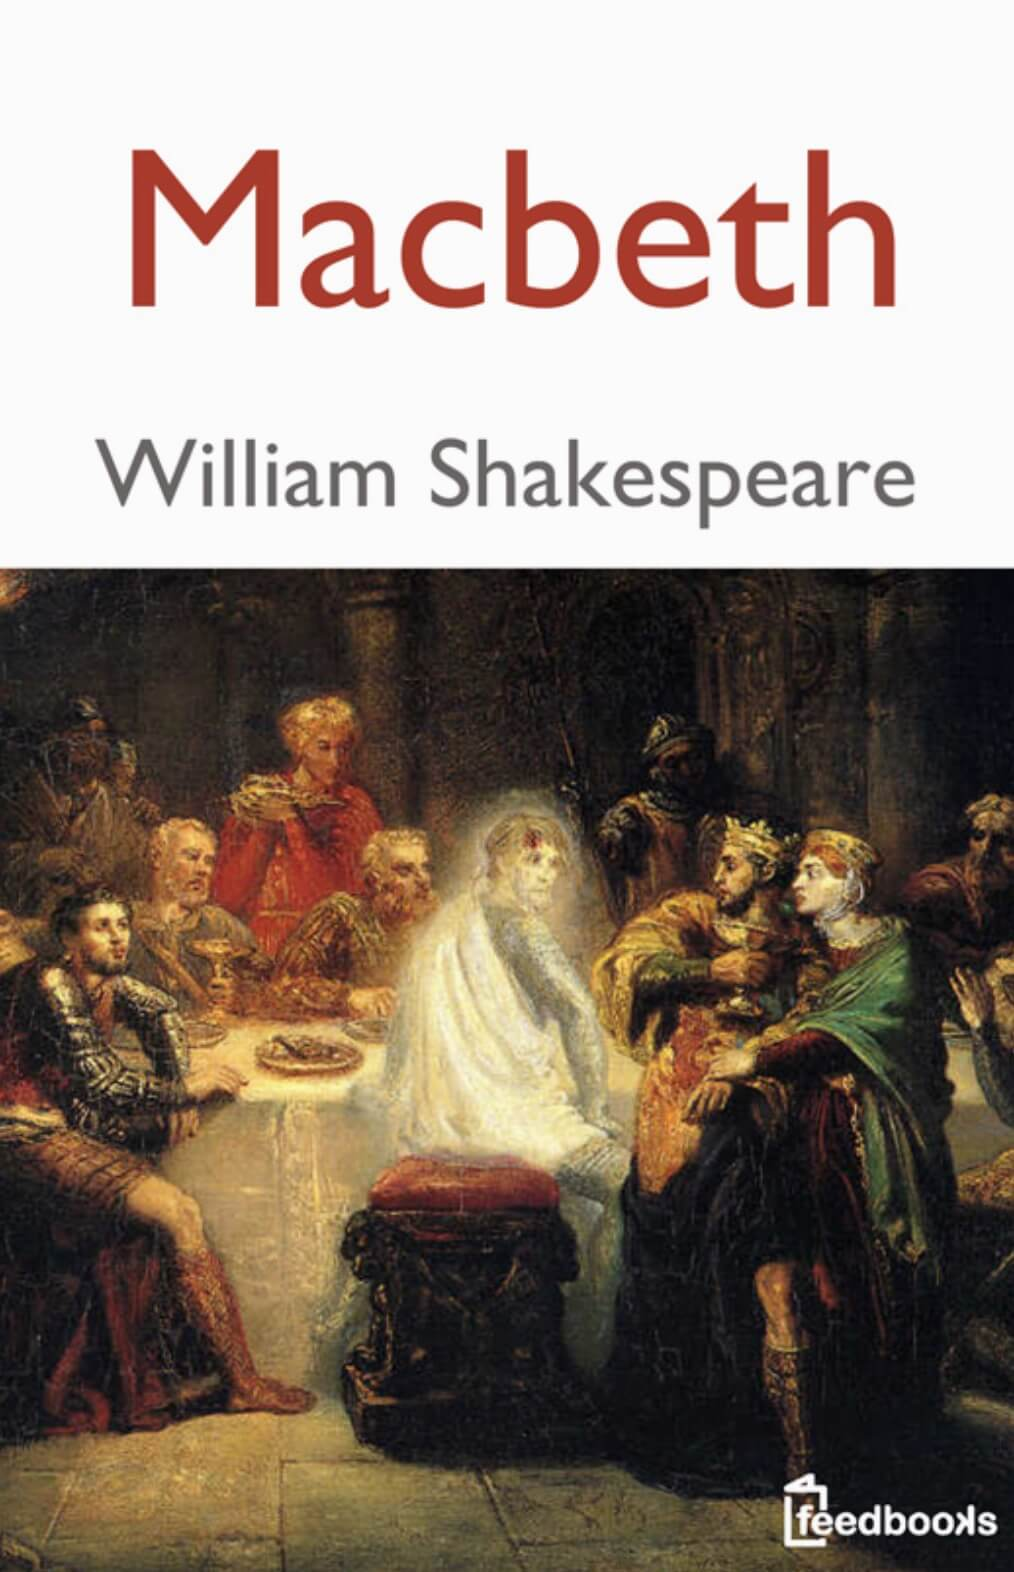 william shakespeares macbeth Macbeth by william shakespeare and a great selection of similar used, new and collectible books available now at abebookscom macbeth by shakespeare - abebooks abebookscom passion for books.